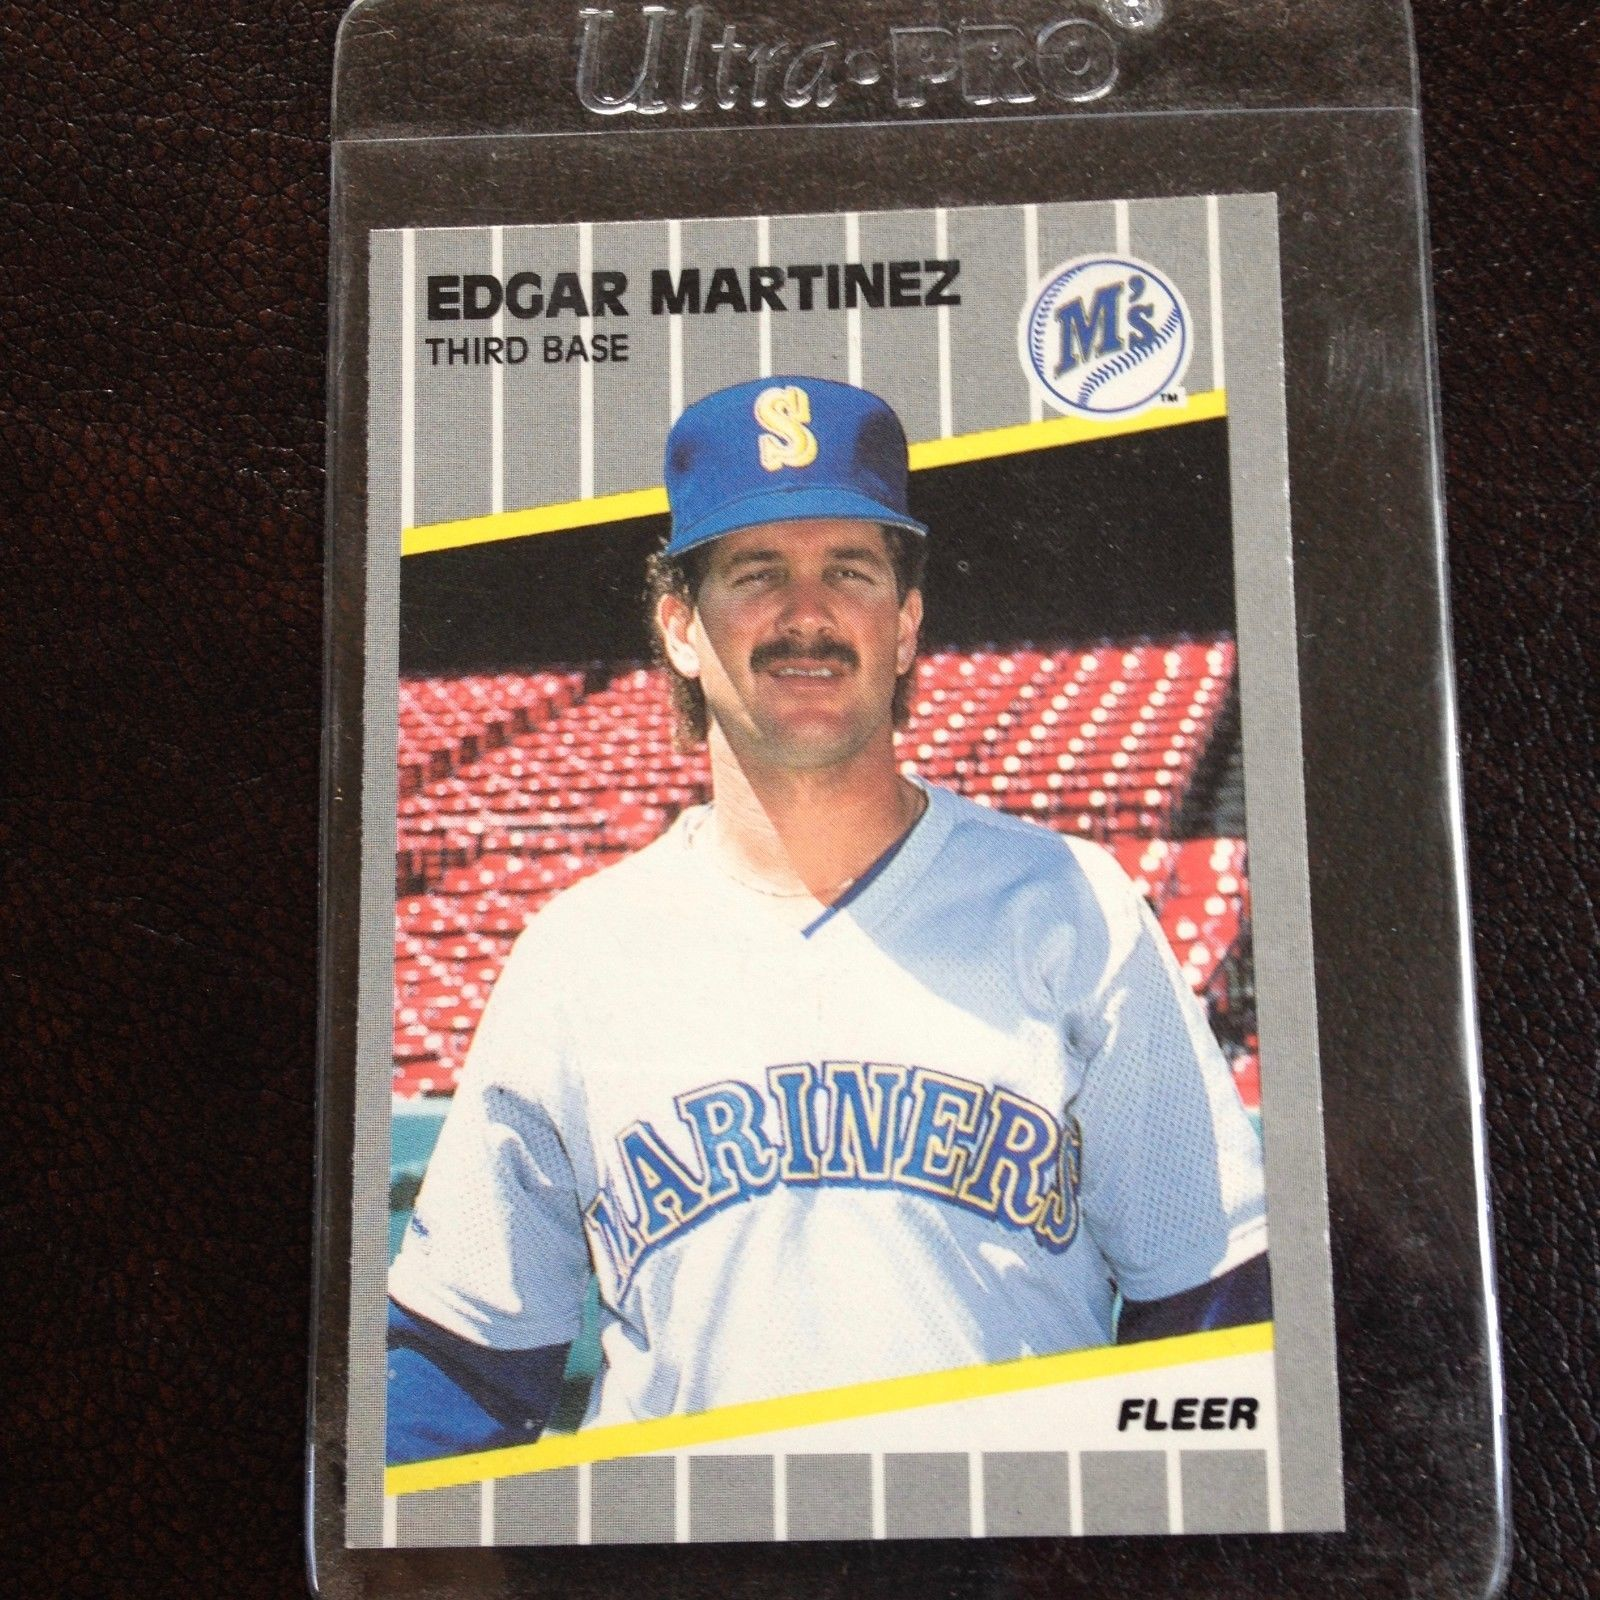 1989 Fleer Edgar Martinez Baseball Card #552 And 50